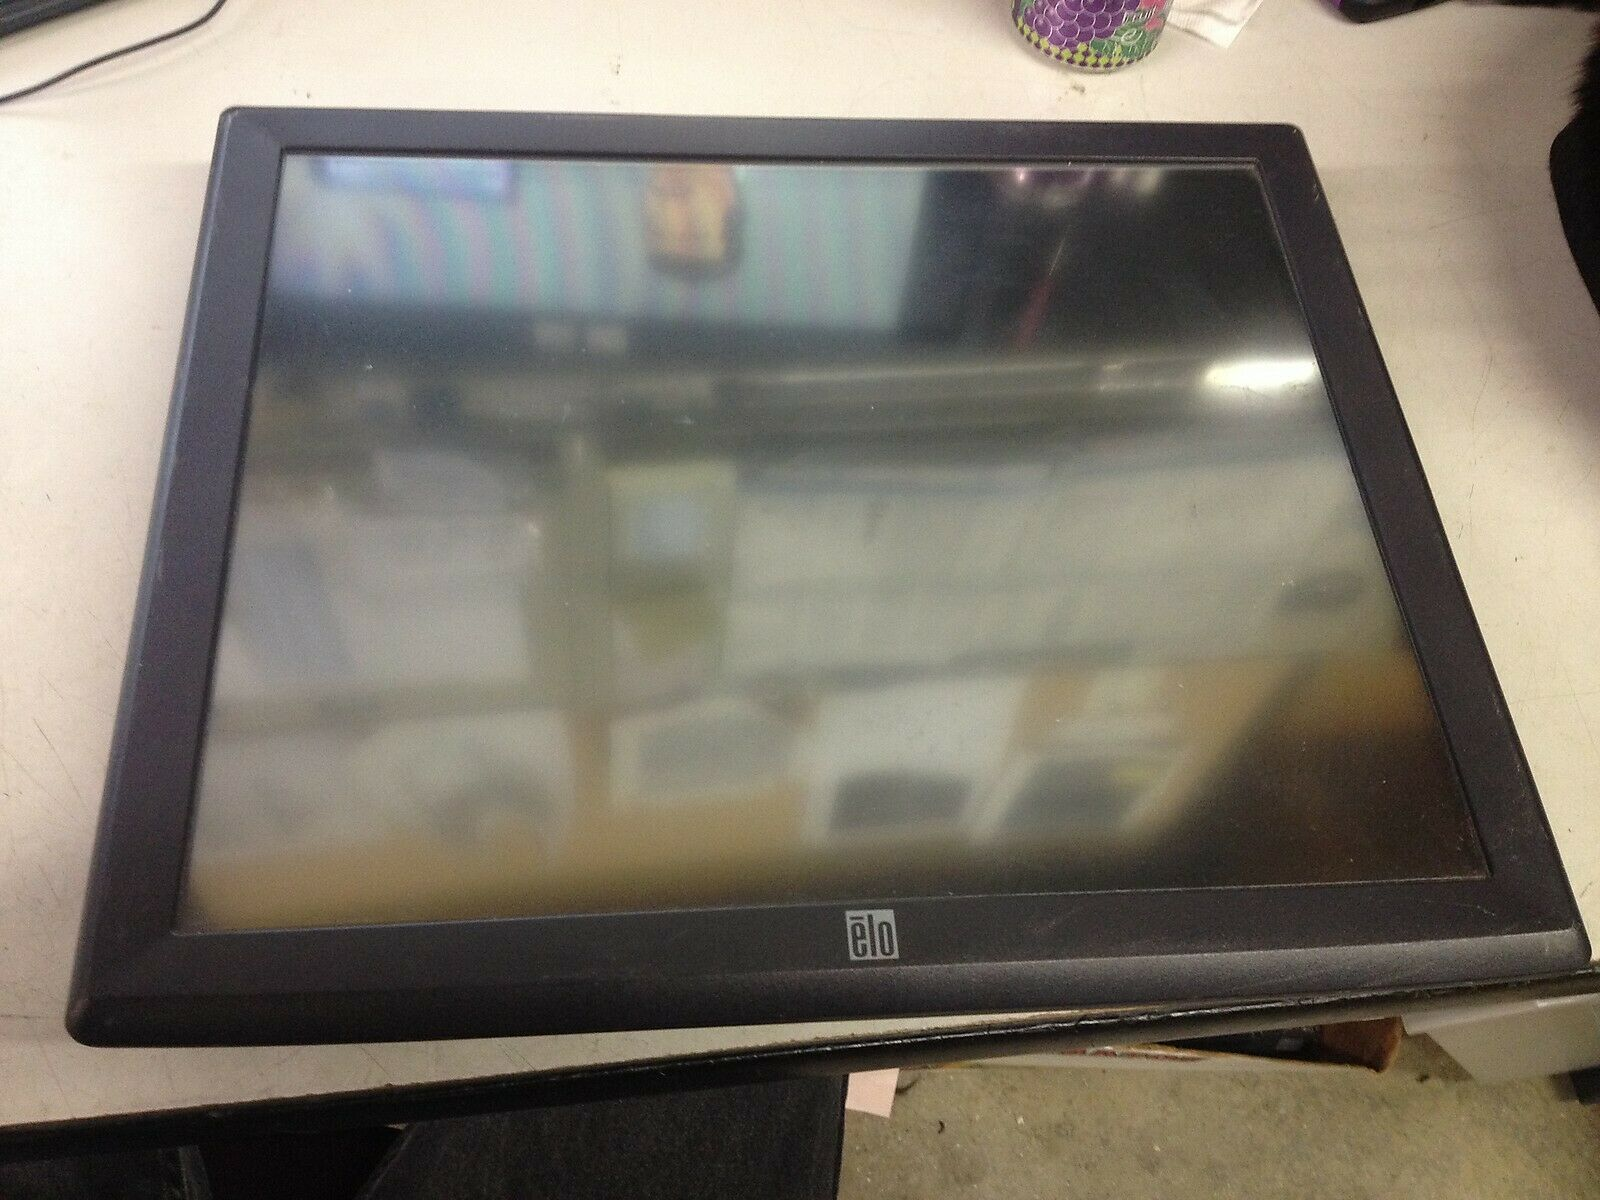 Primary image for Elo Touch Solutions ET1915L-7CWA-1-G E607608 LCD Touch Monitor No Base